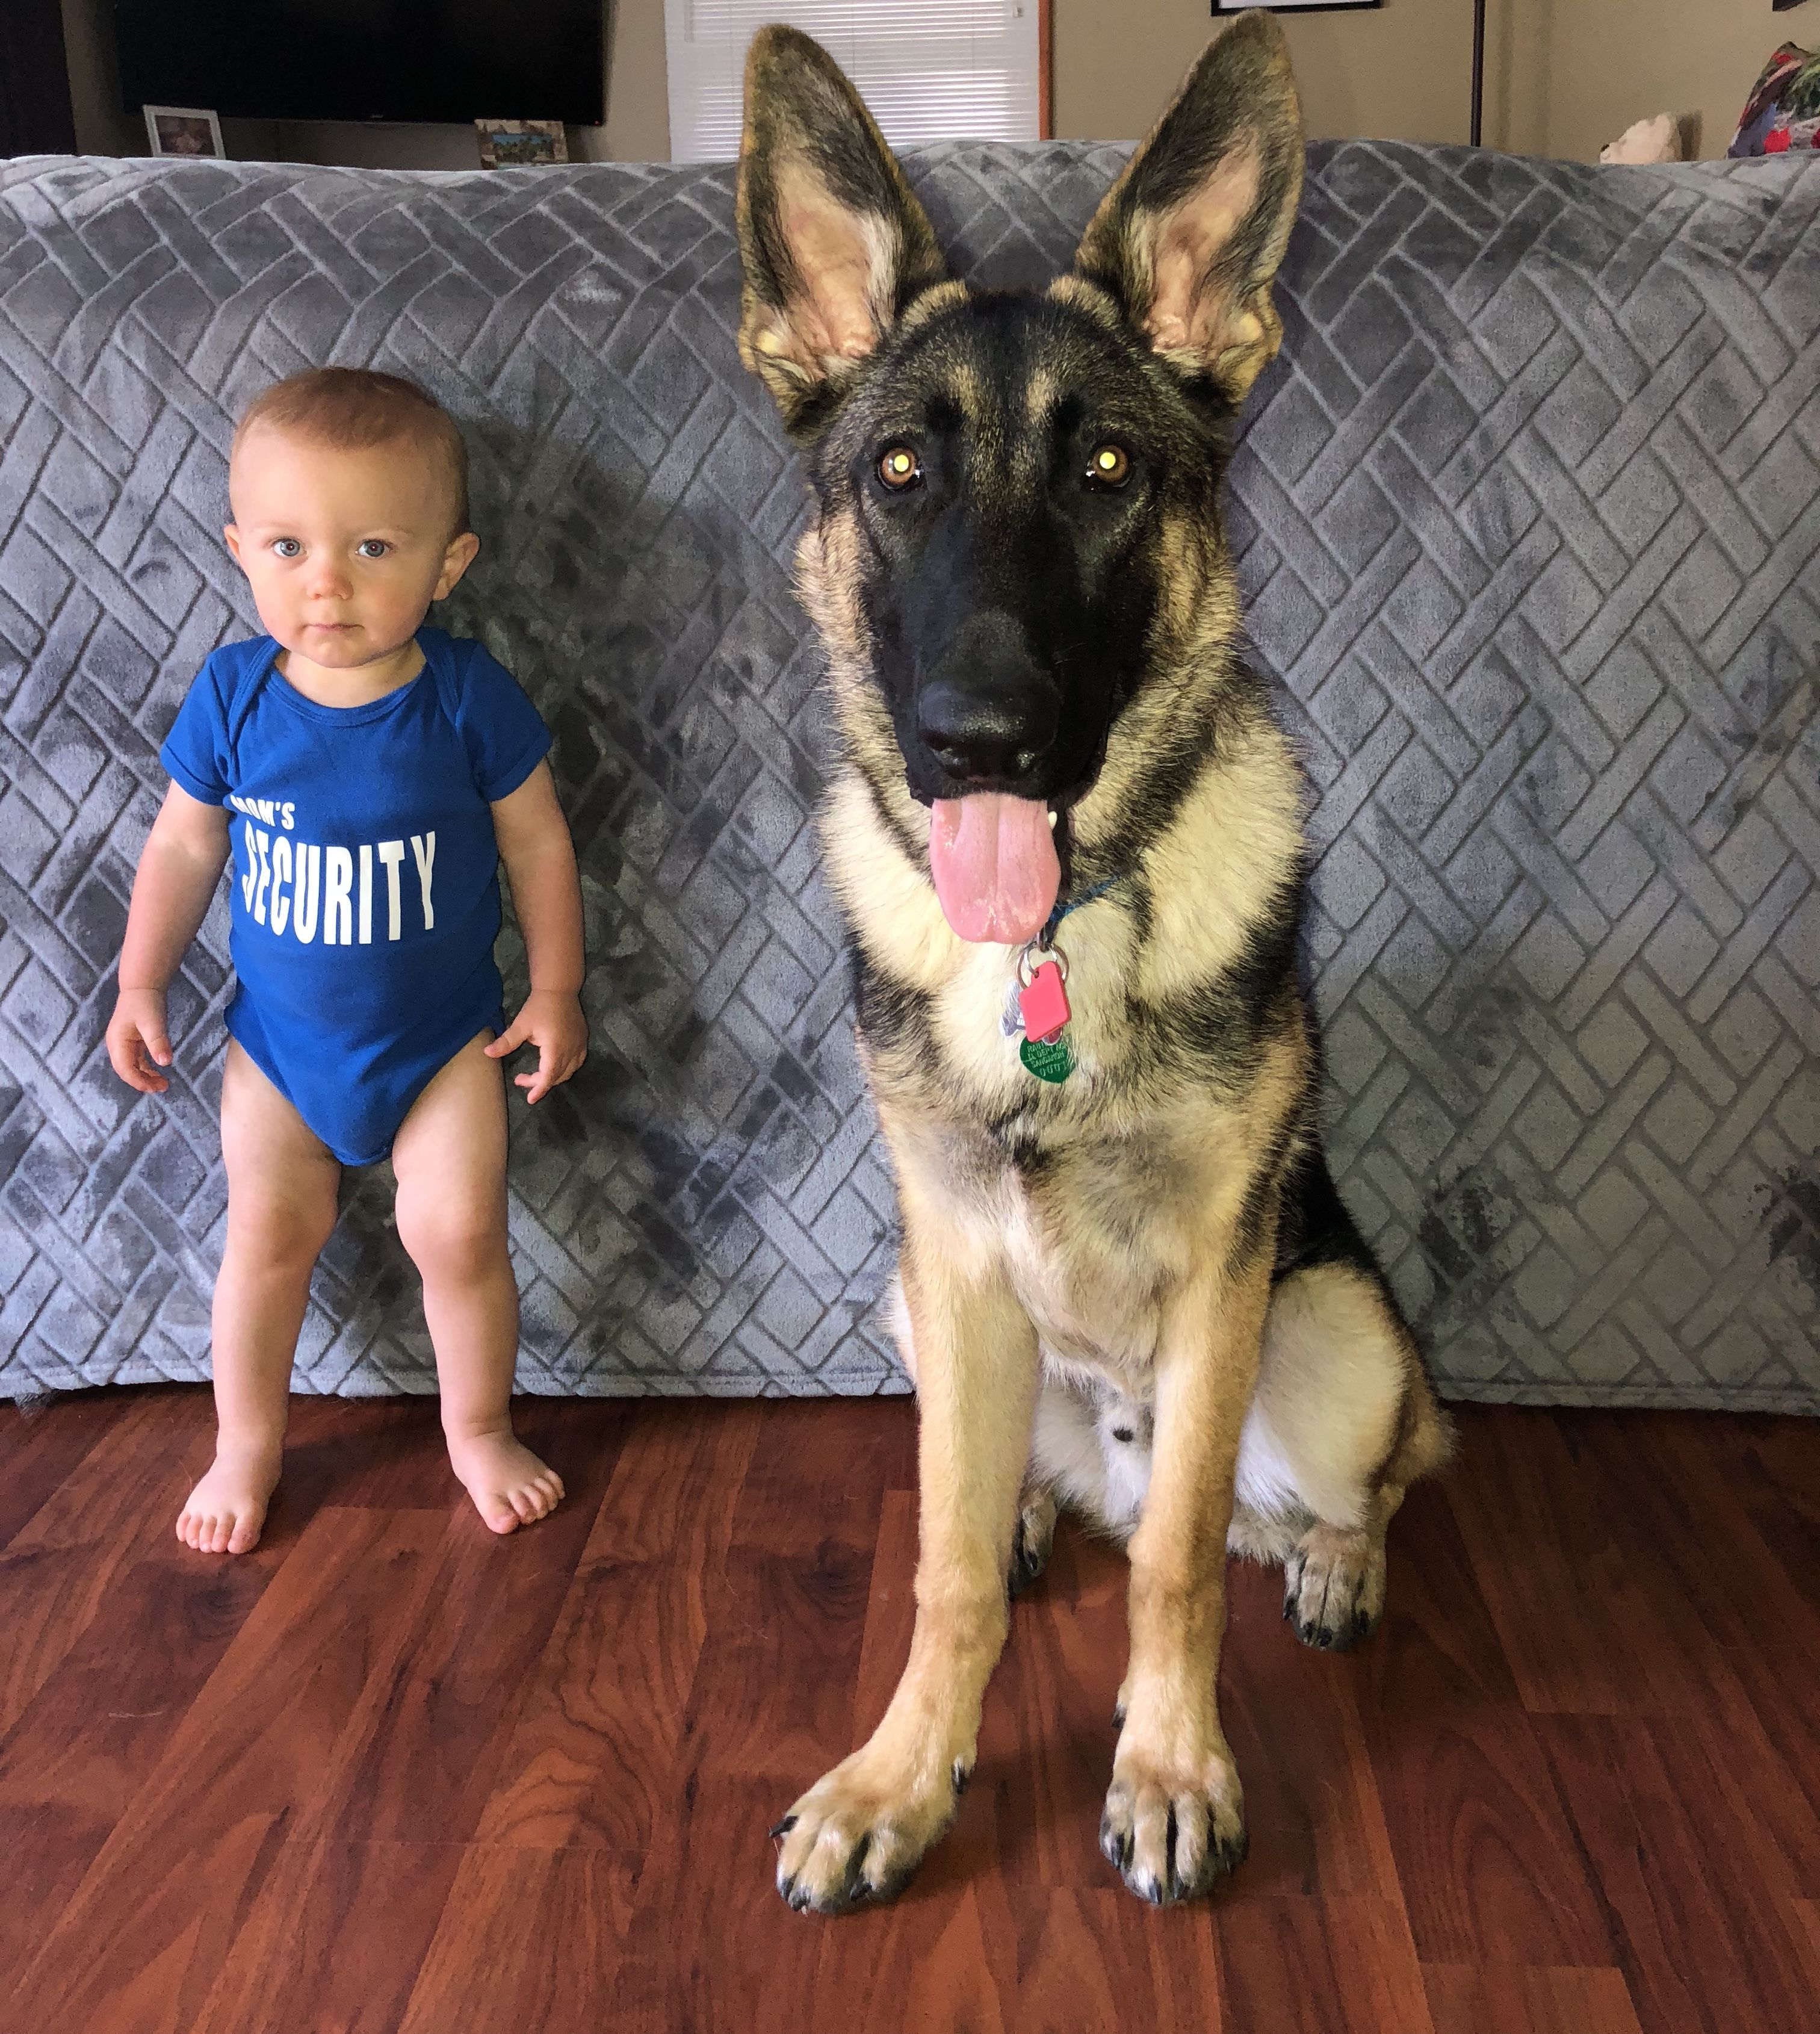 Mom S Security Security Team Baby And Dog Security Team German